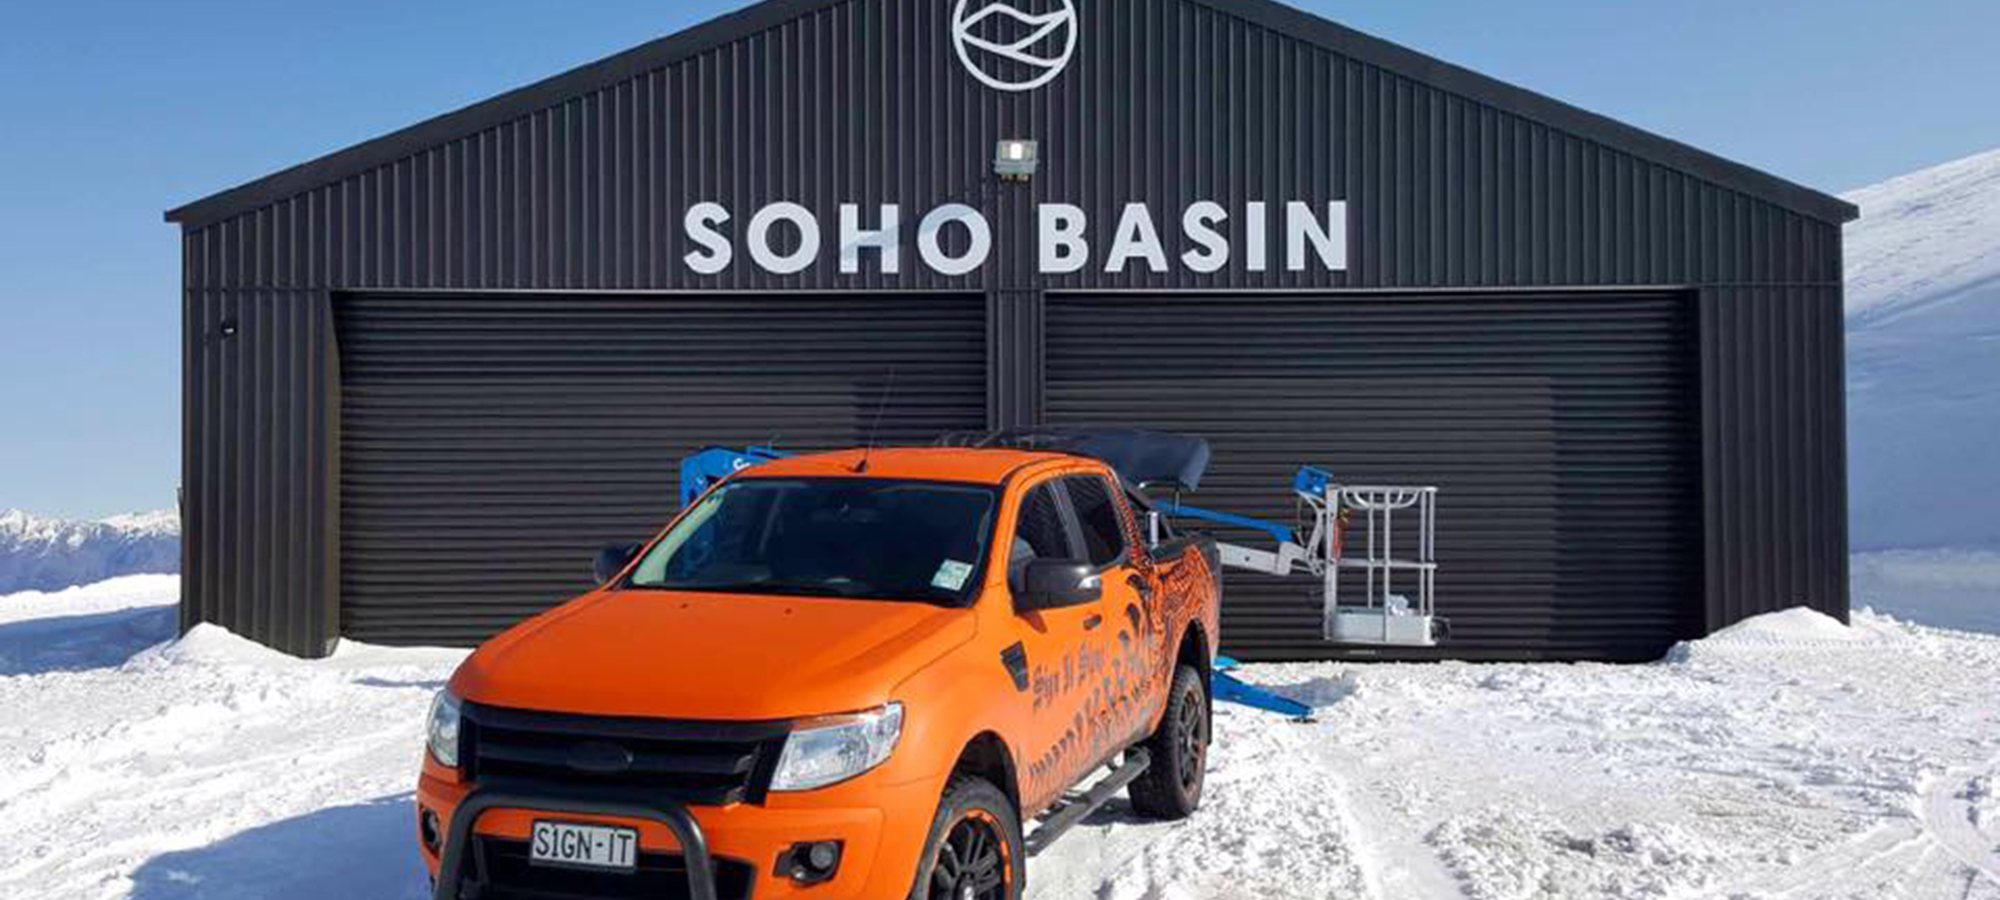 Soho Basin Building